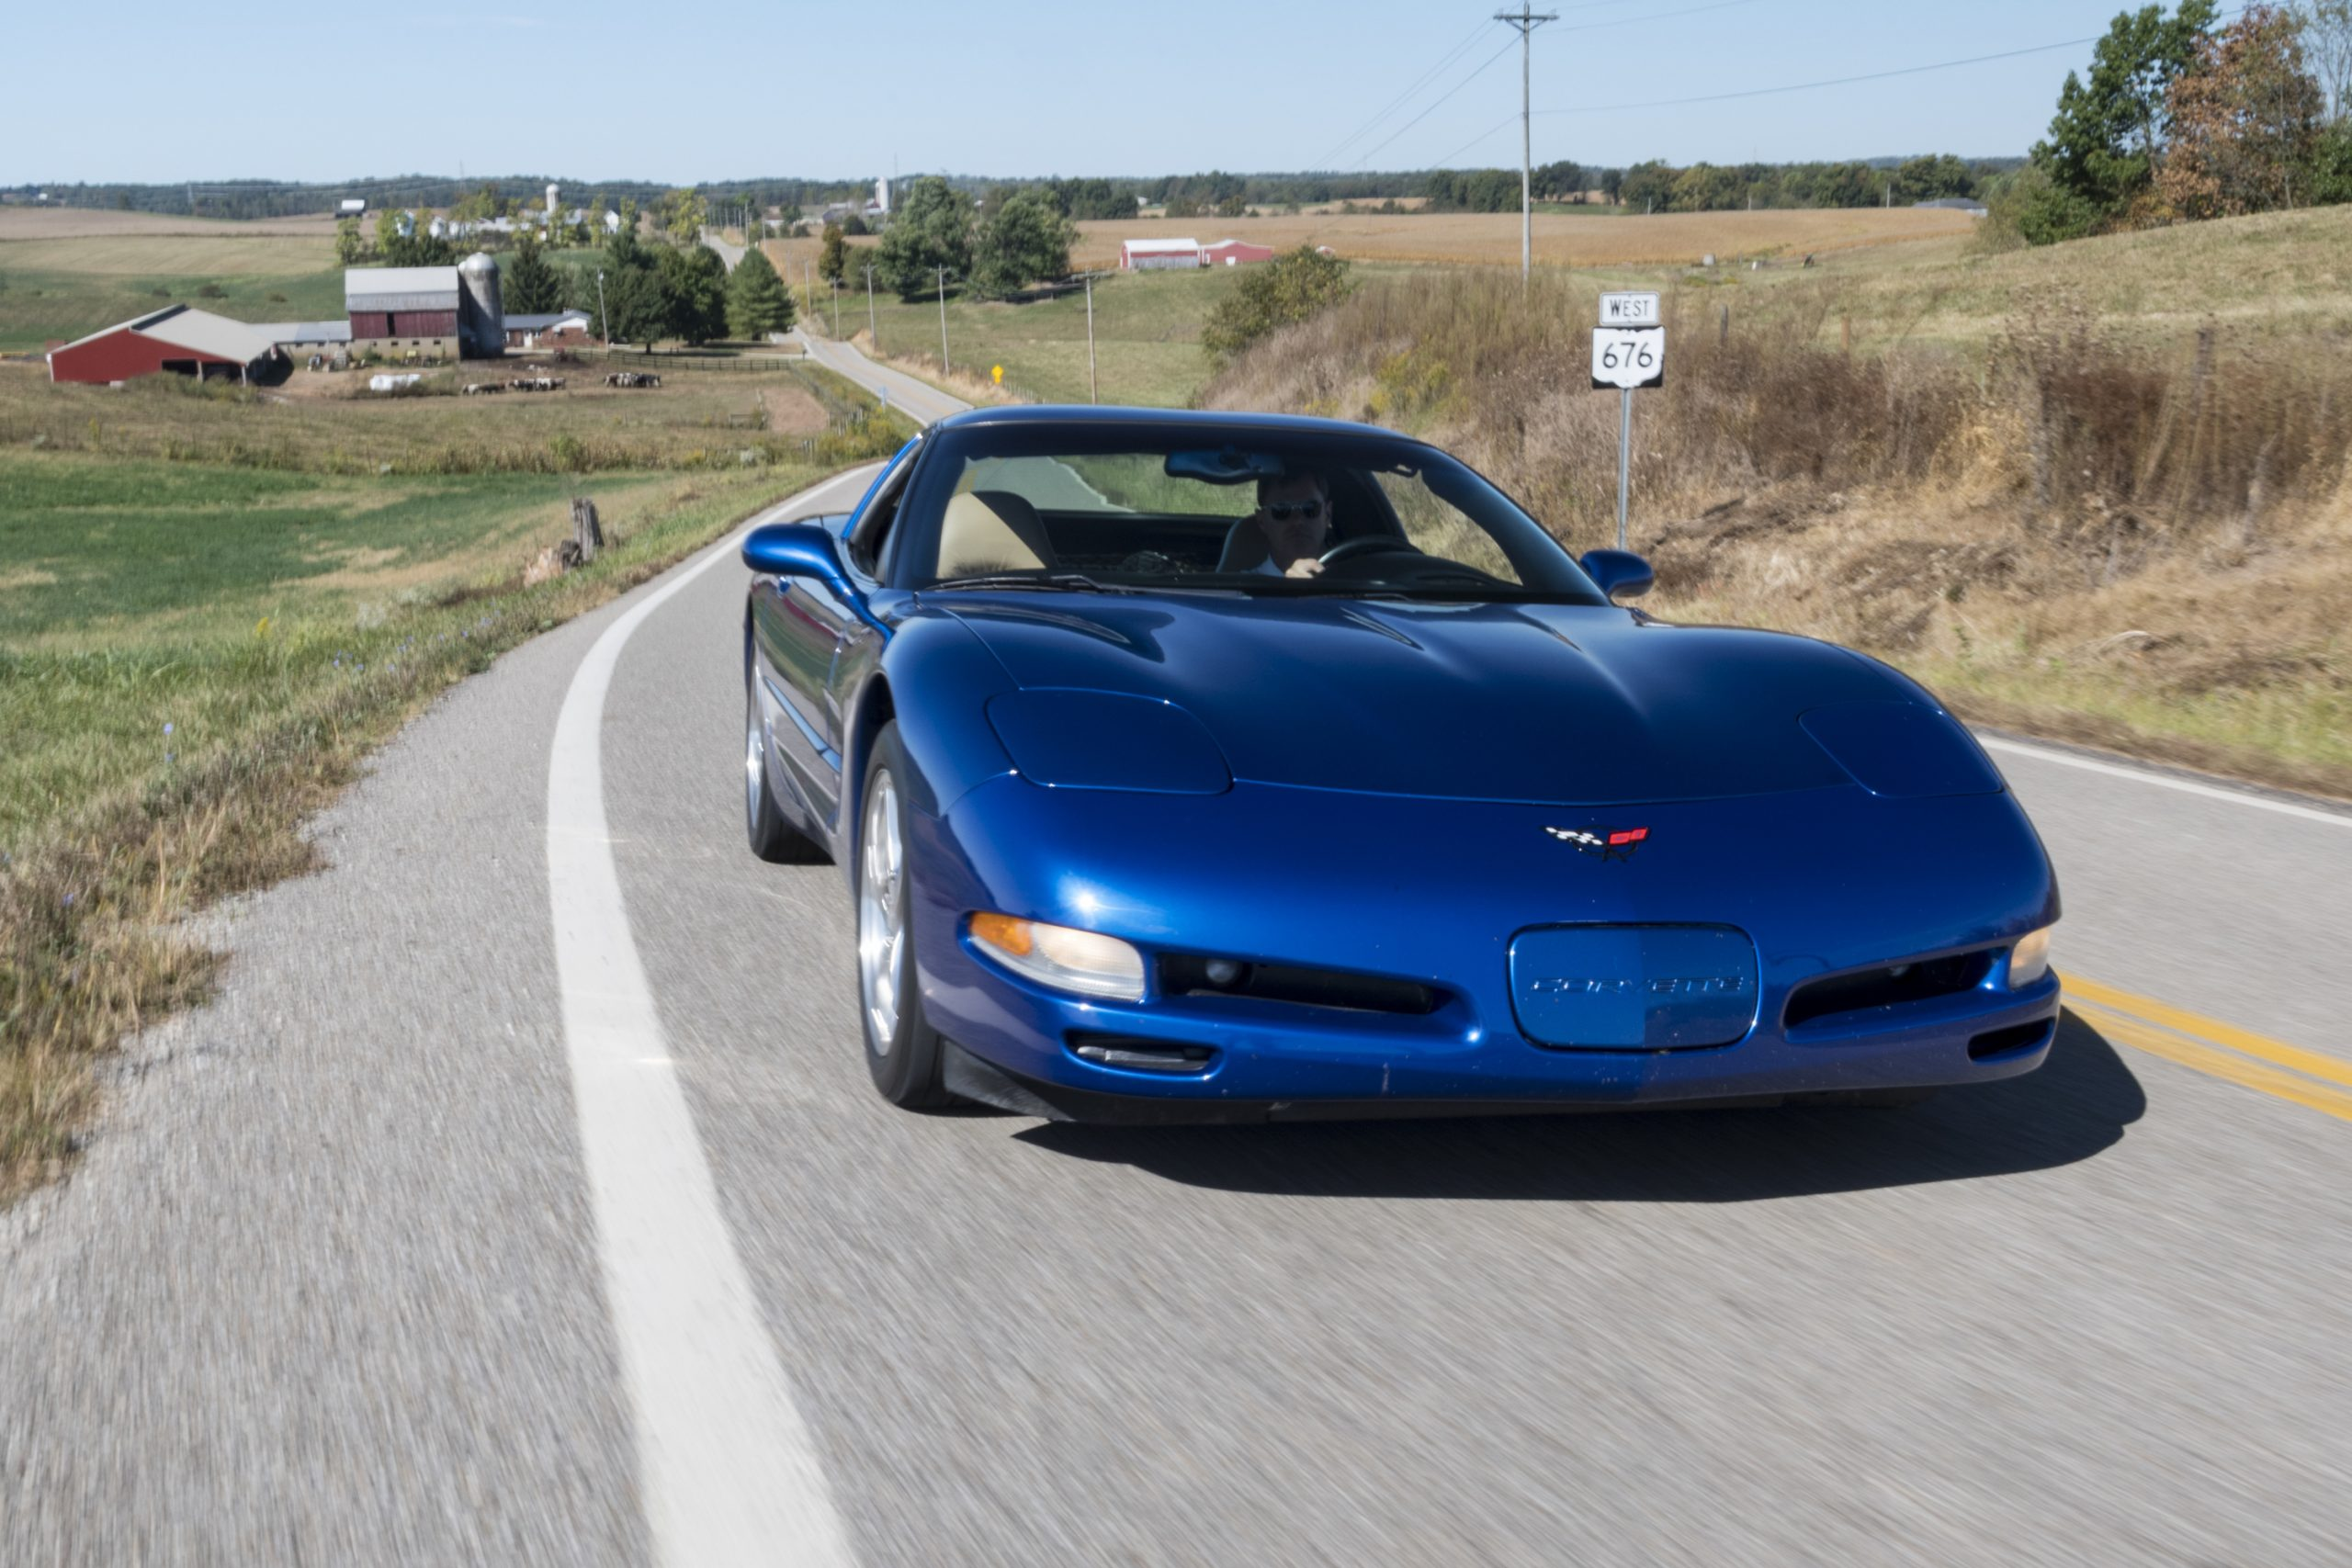 C5 Corvette Front Country Road Action